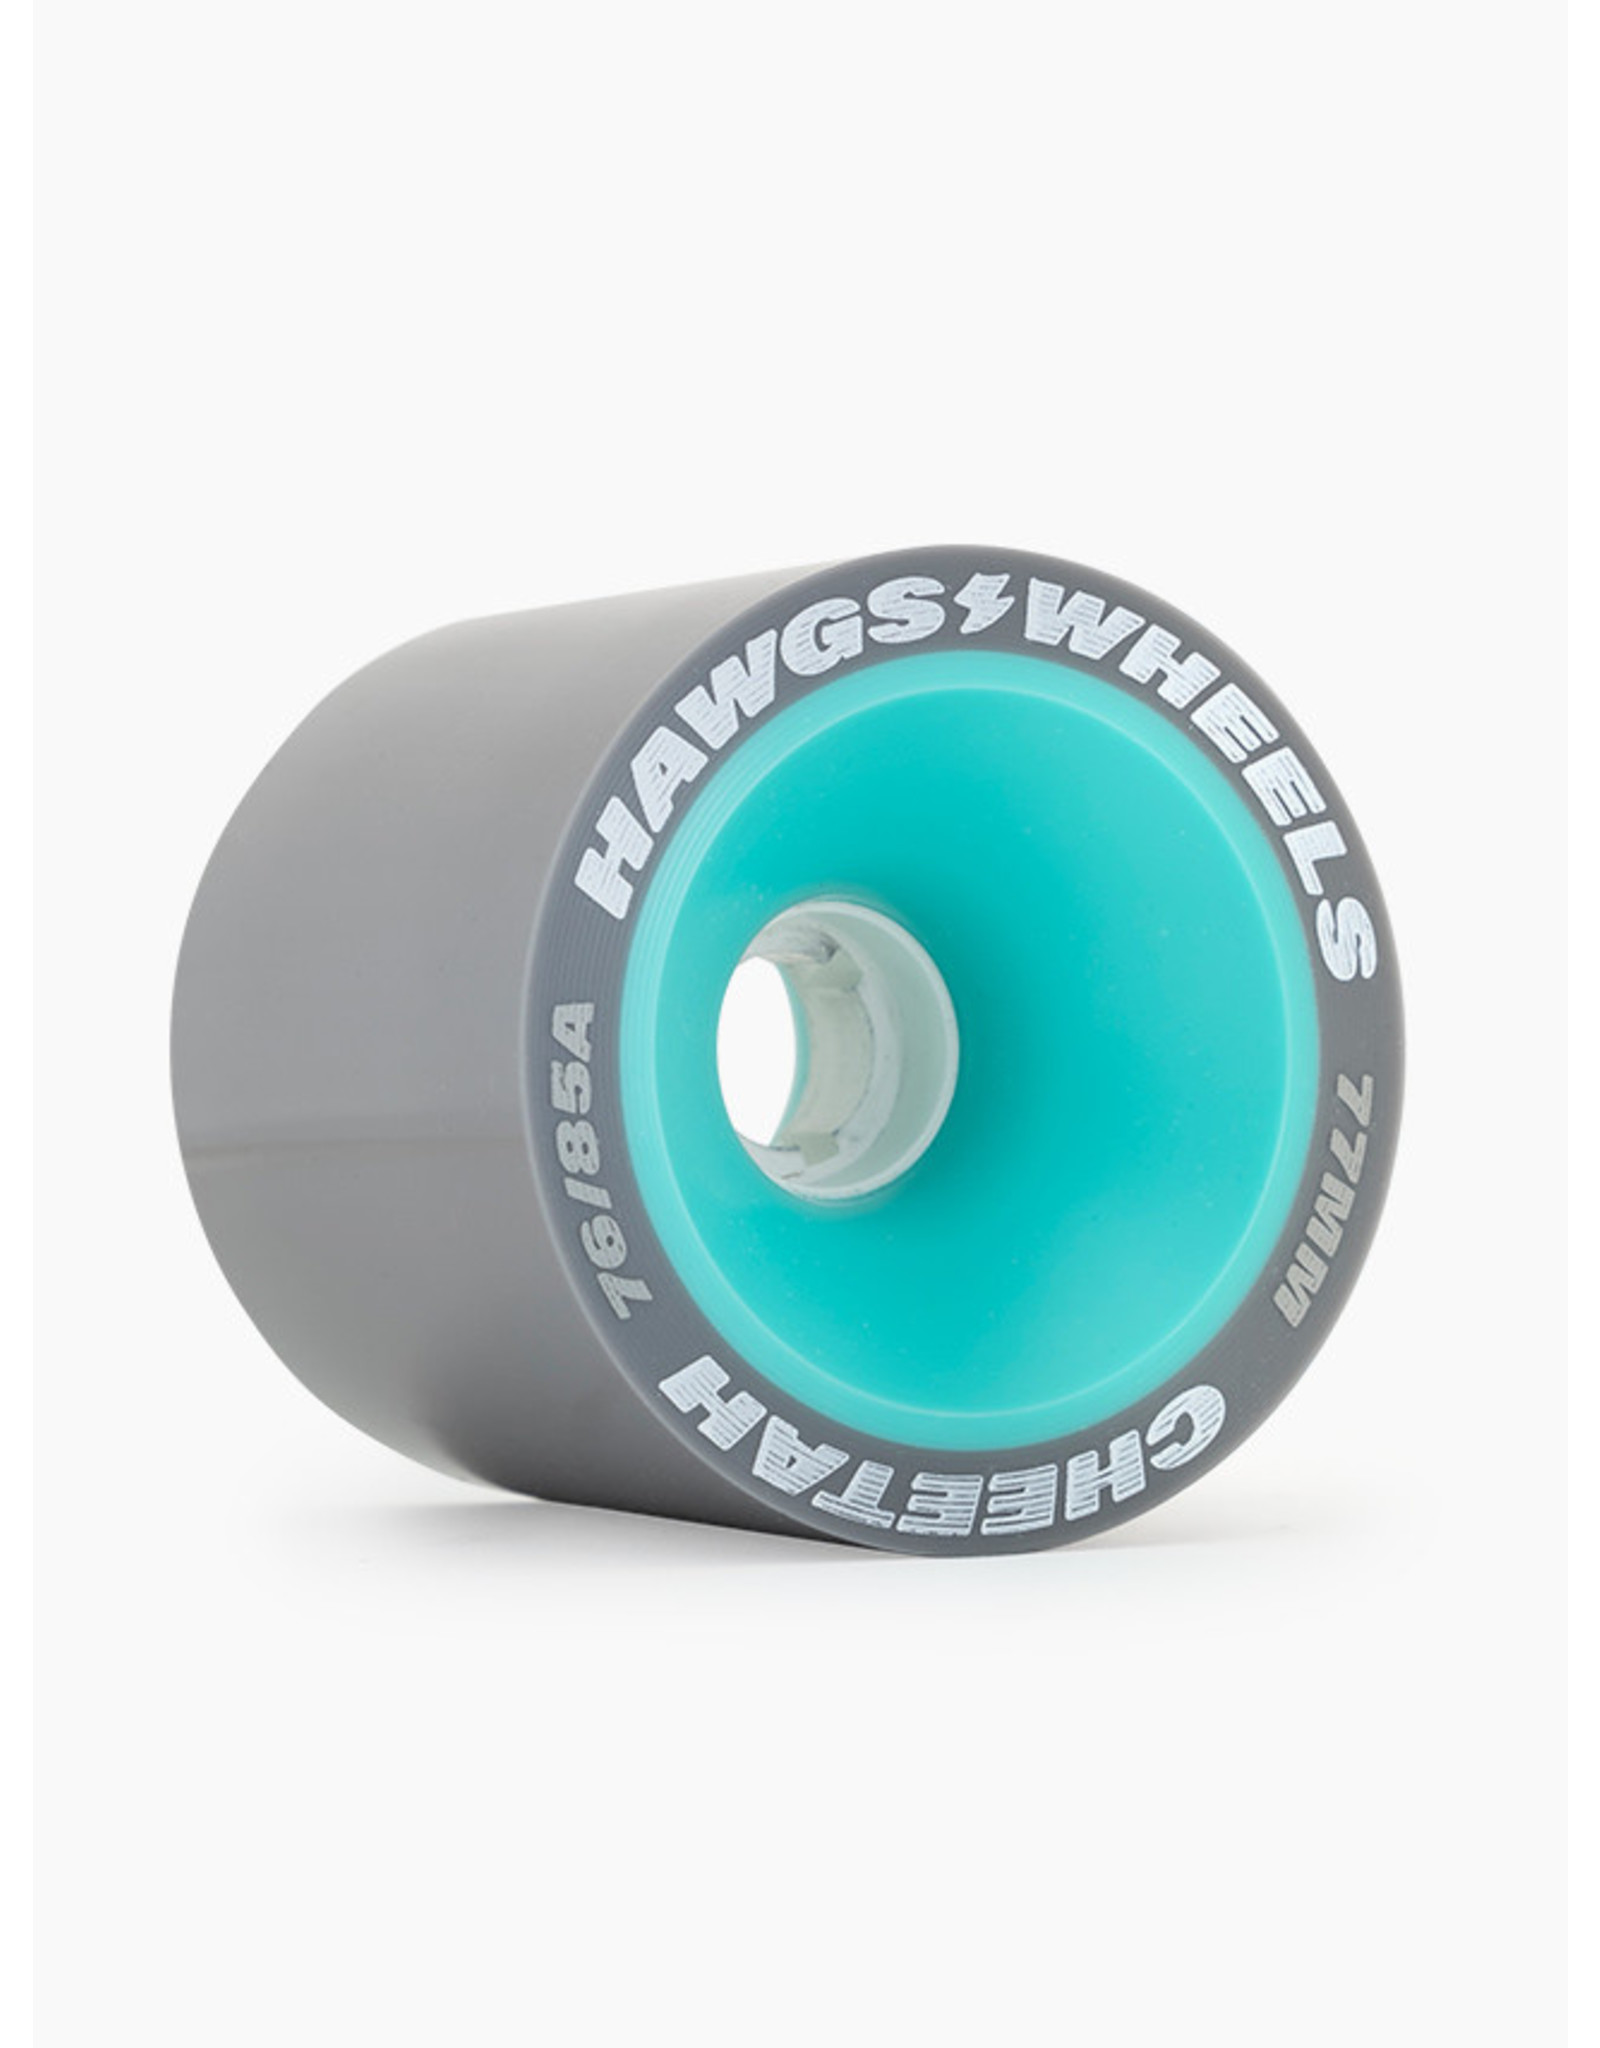 Hawgs - Roue double cheetah grey/teal 85A